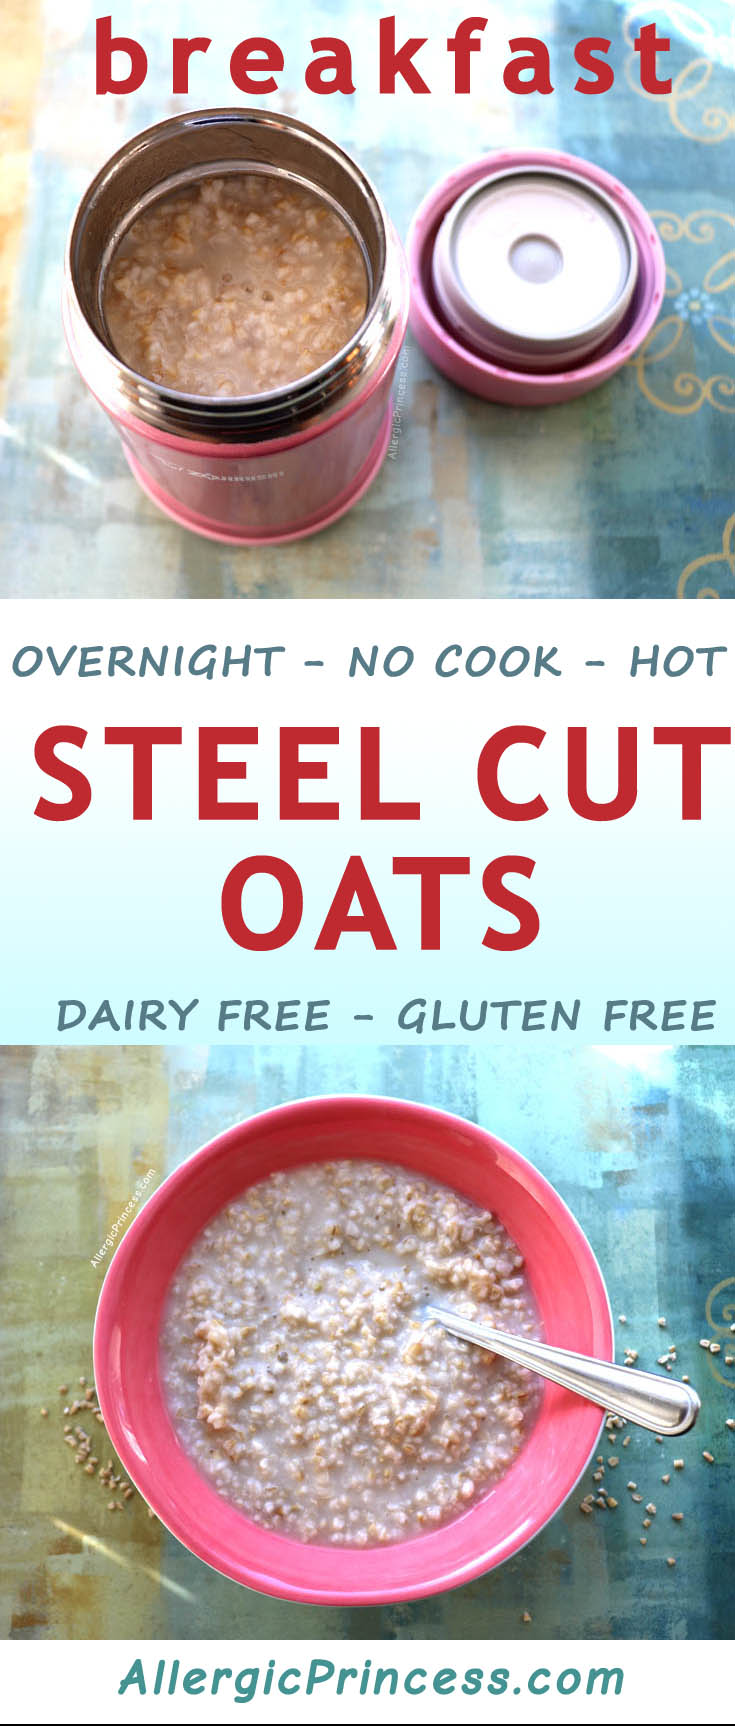 A heartwarming bowl of Steel Cut Oats is possible without cooking! Prepping just a few minutes before going to bed, you will magically have a hot breakfast ready and waiting.